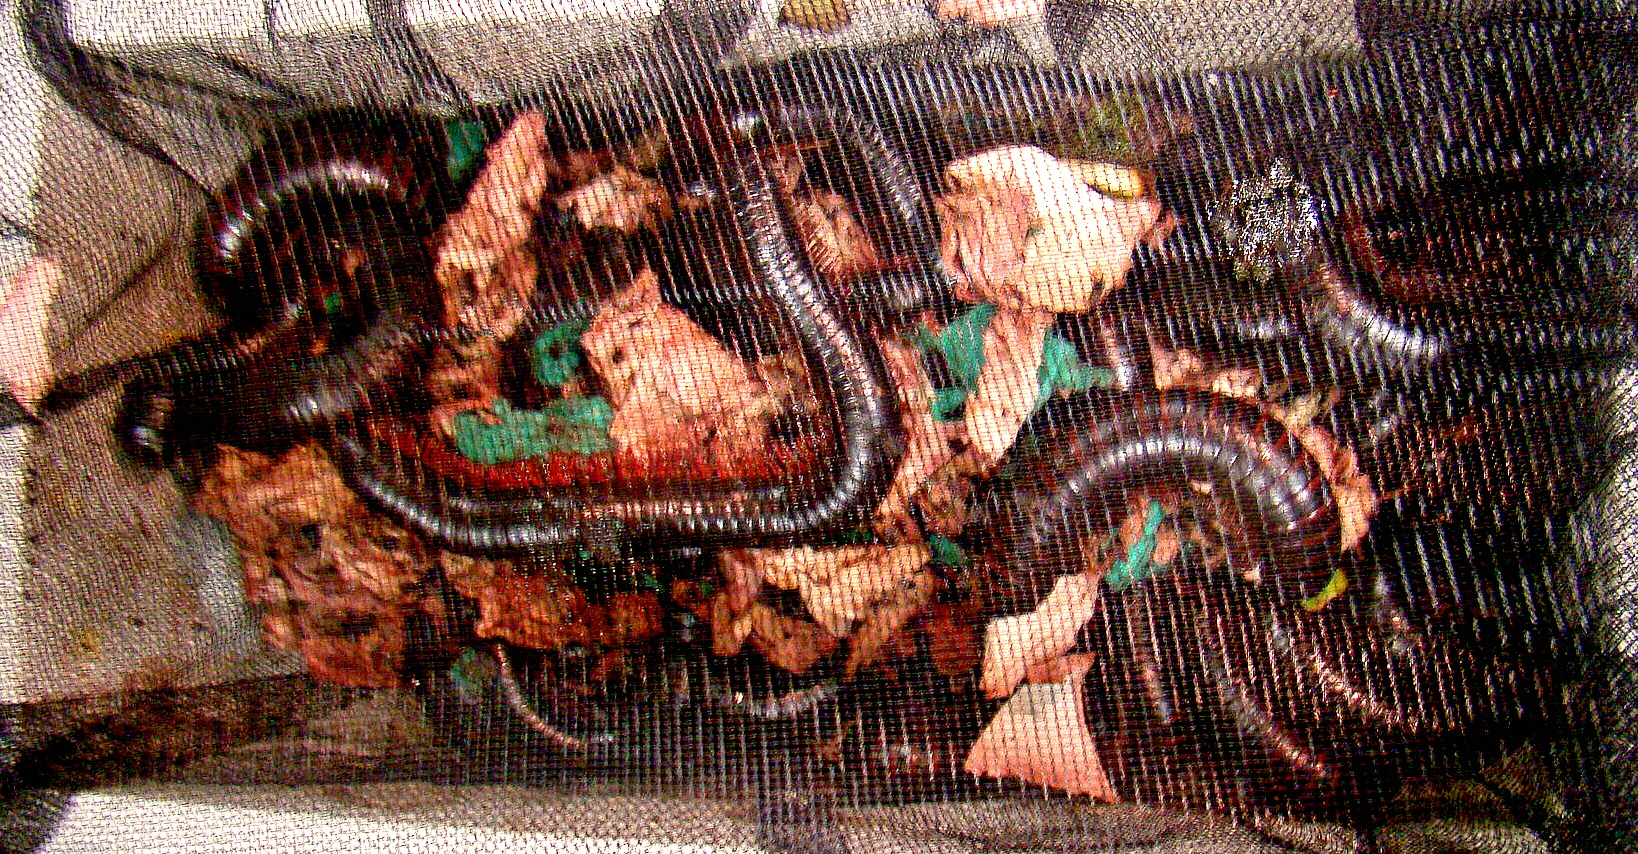 Giant millipedes in a mesh bag, discovered by customs agents at SFO. (U.S. Customs and Border Protection)